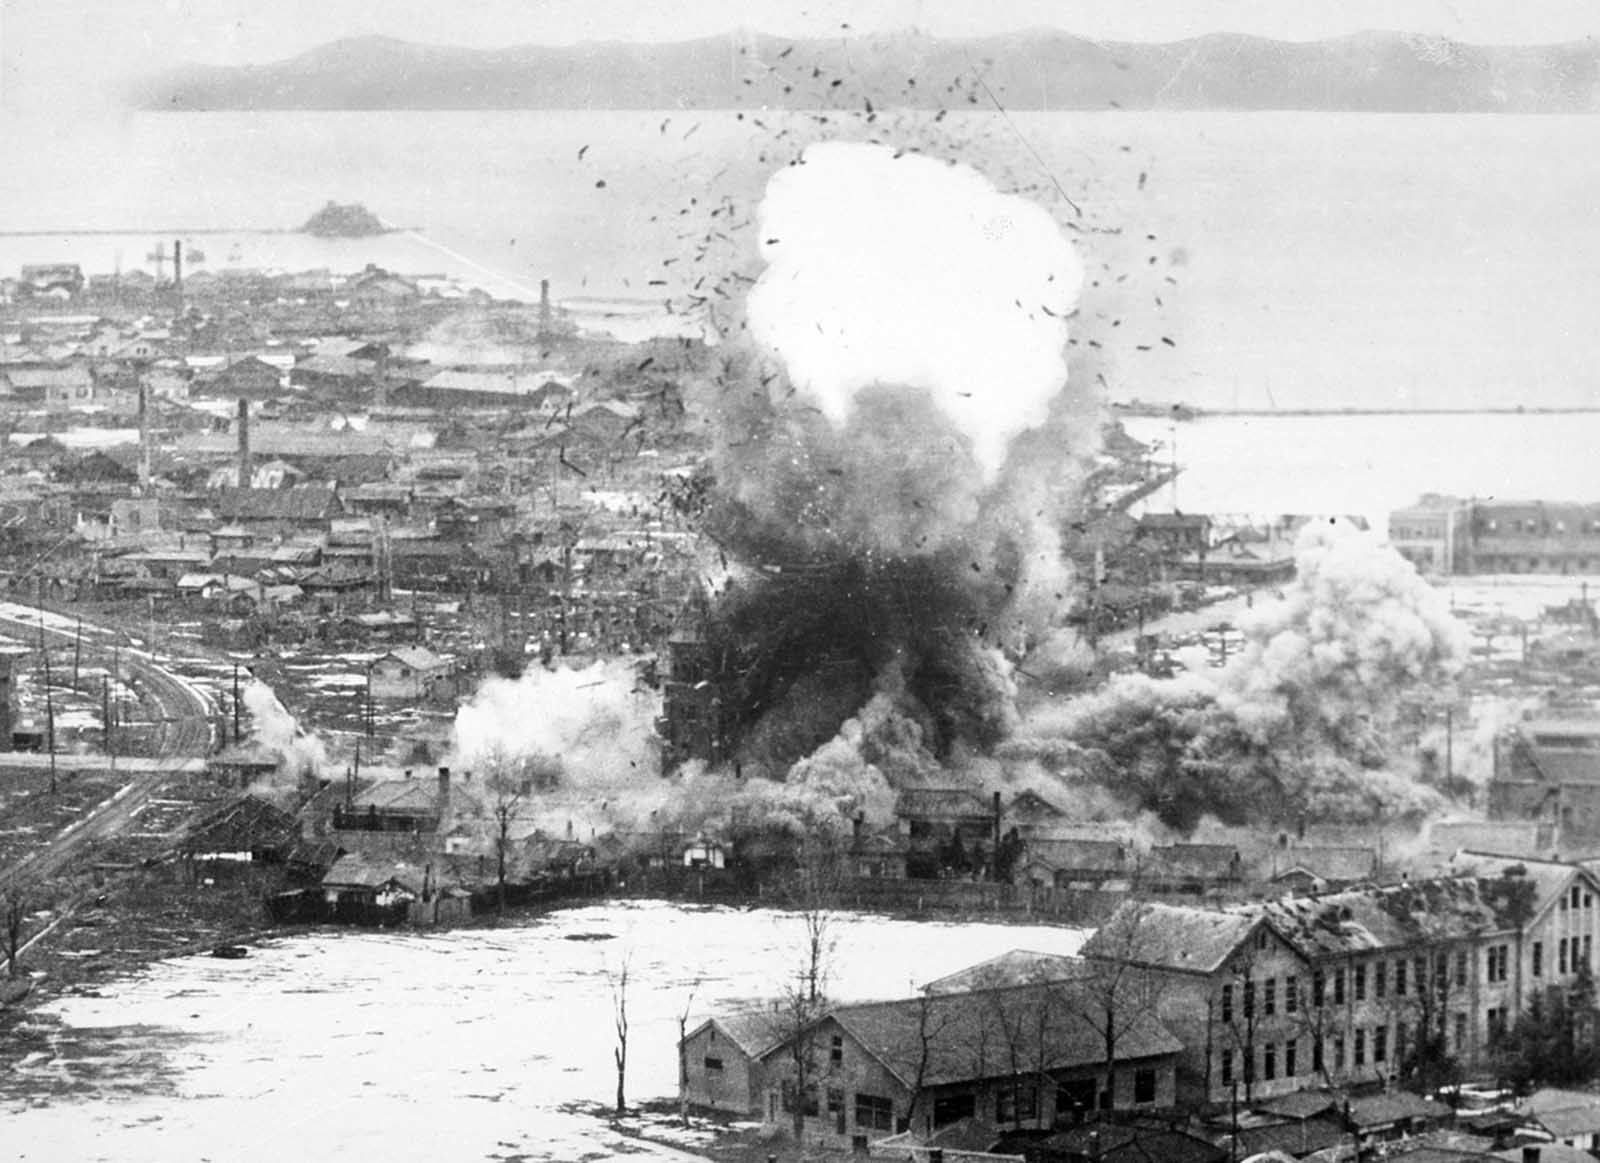 Supply warehouses and dock facilities at this east coast port explode after para-demolition bombs were dropped from the Fifth Air Force's B-26 Invader light bombers. Wonsan, North Korea, 1951.